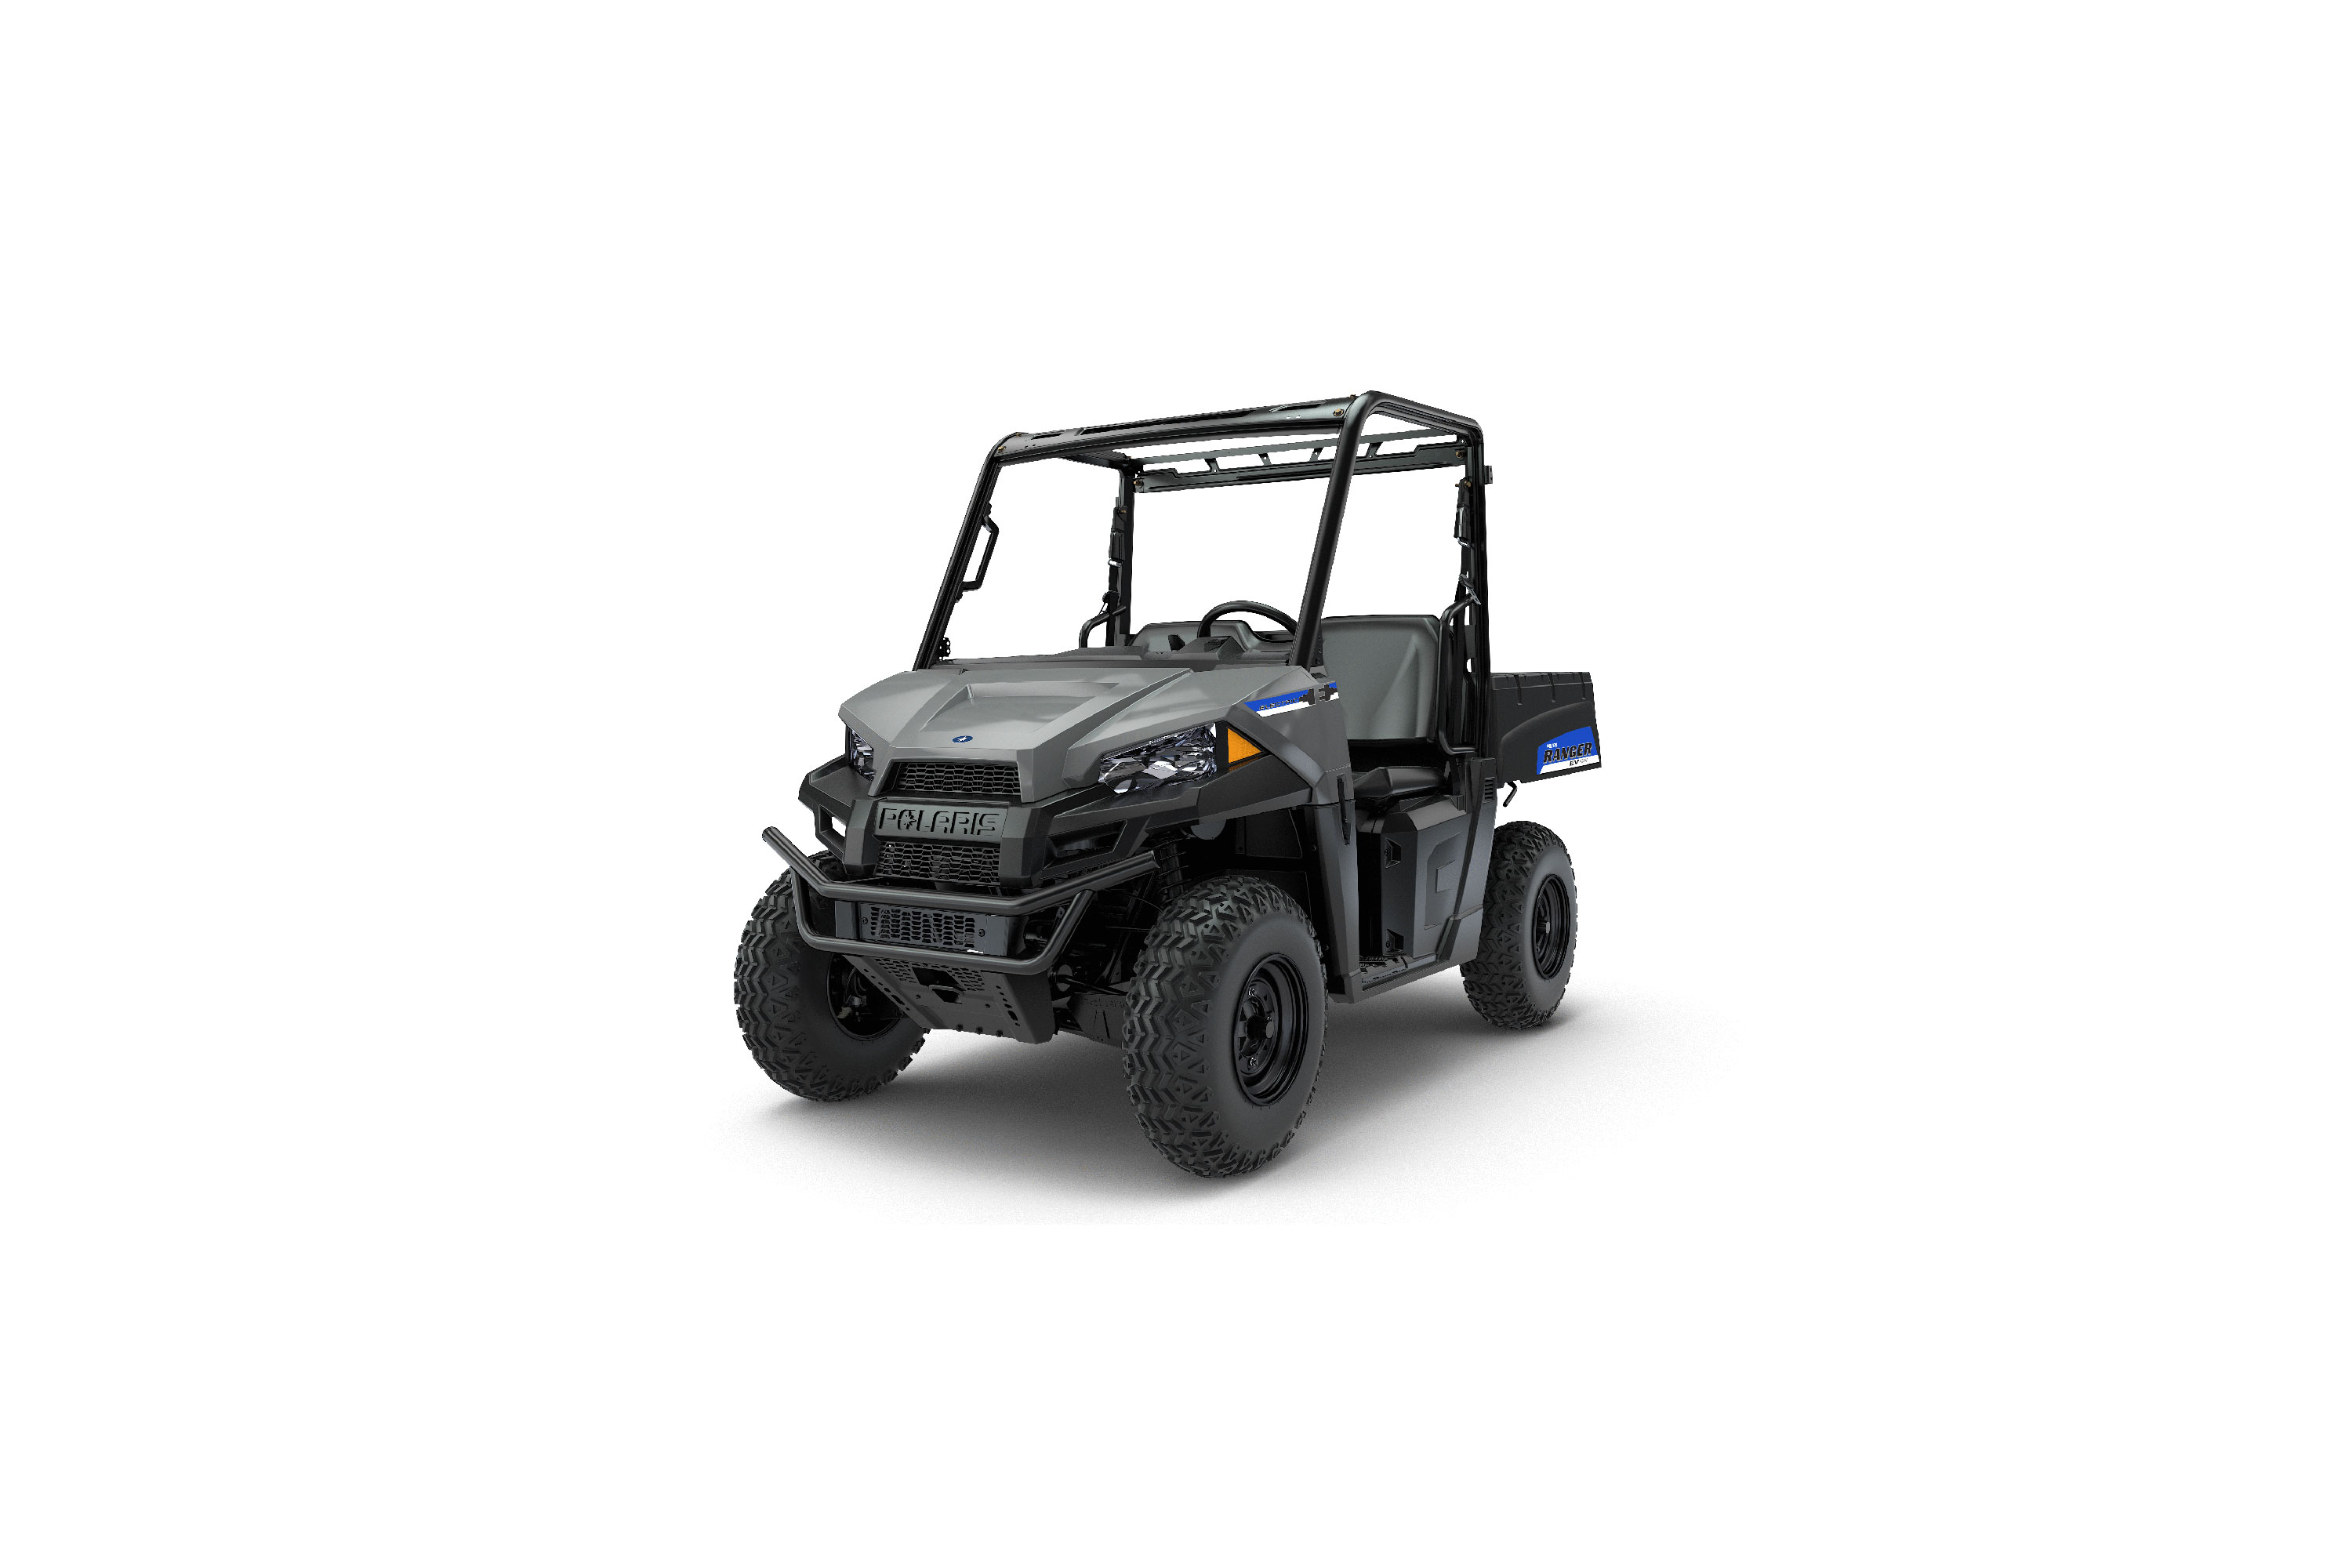 polaris ranger ev electric jmk quads. Black Bedroom Furniture Sets. Home Design Ideas